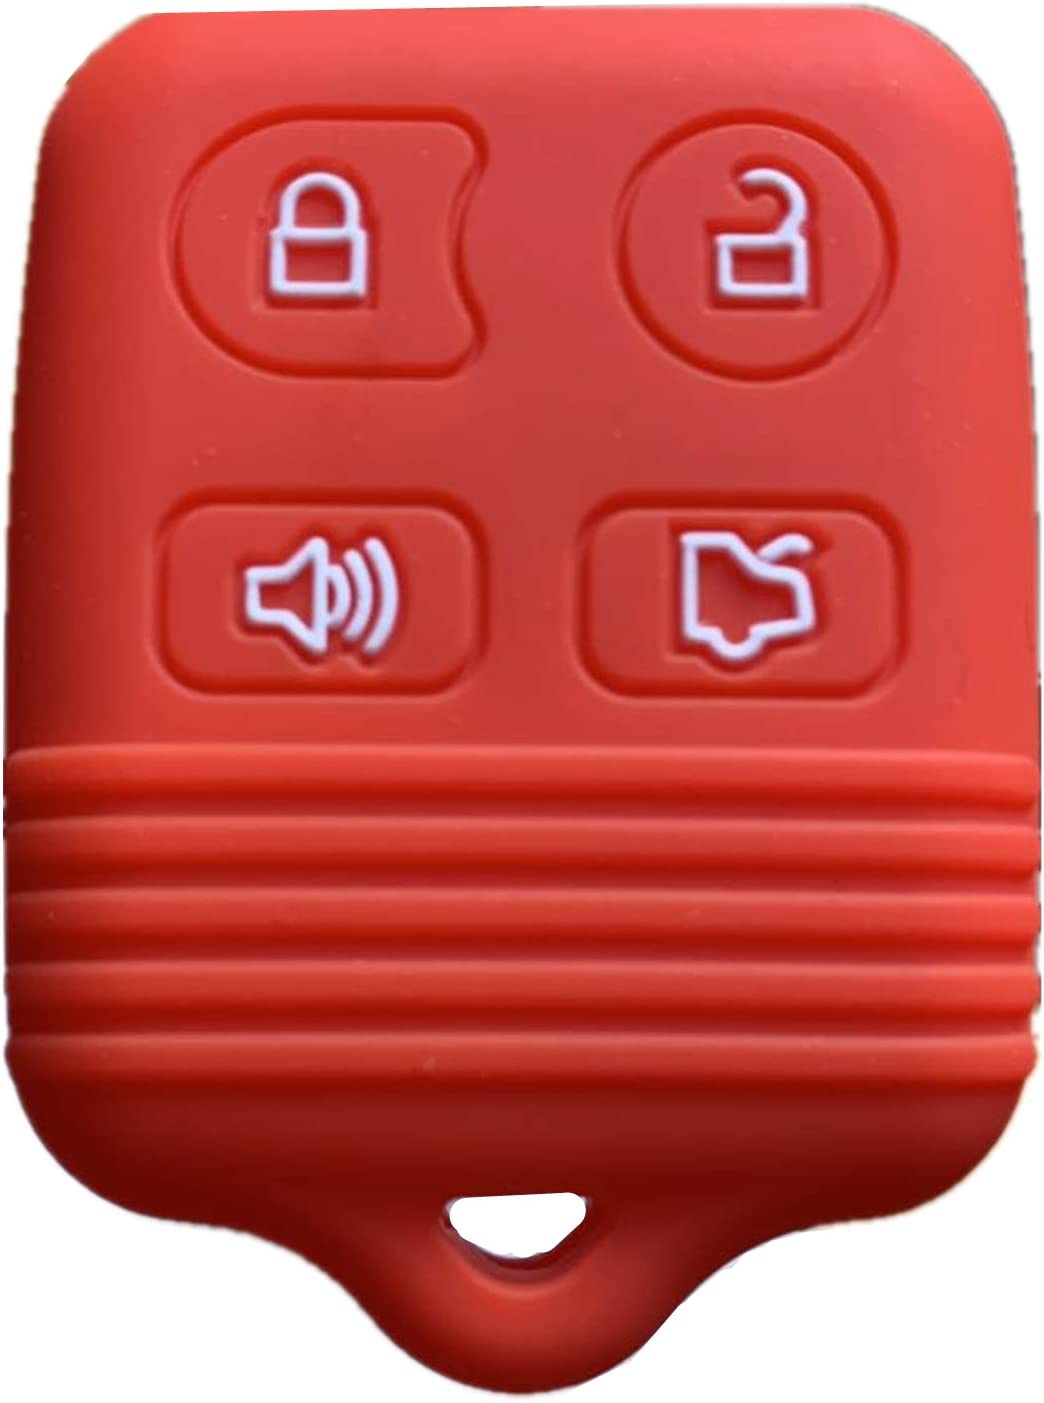 Bargain sale Rpkey Silicone Keyless Entry Remote Control Case p Fob New York Mall Key Cover